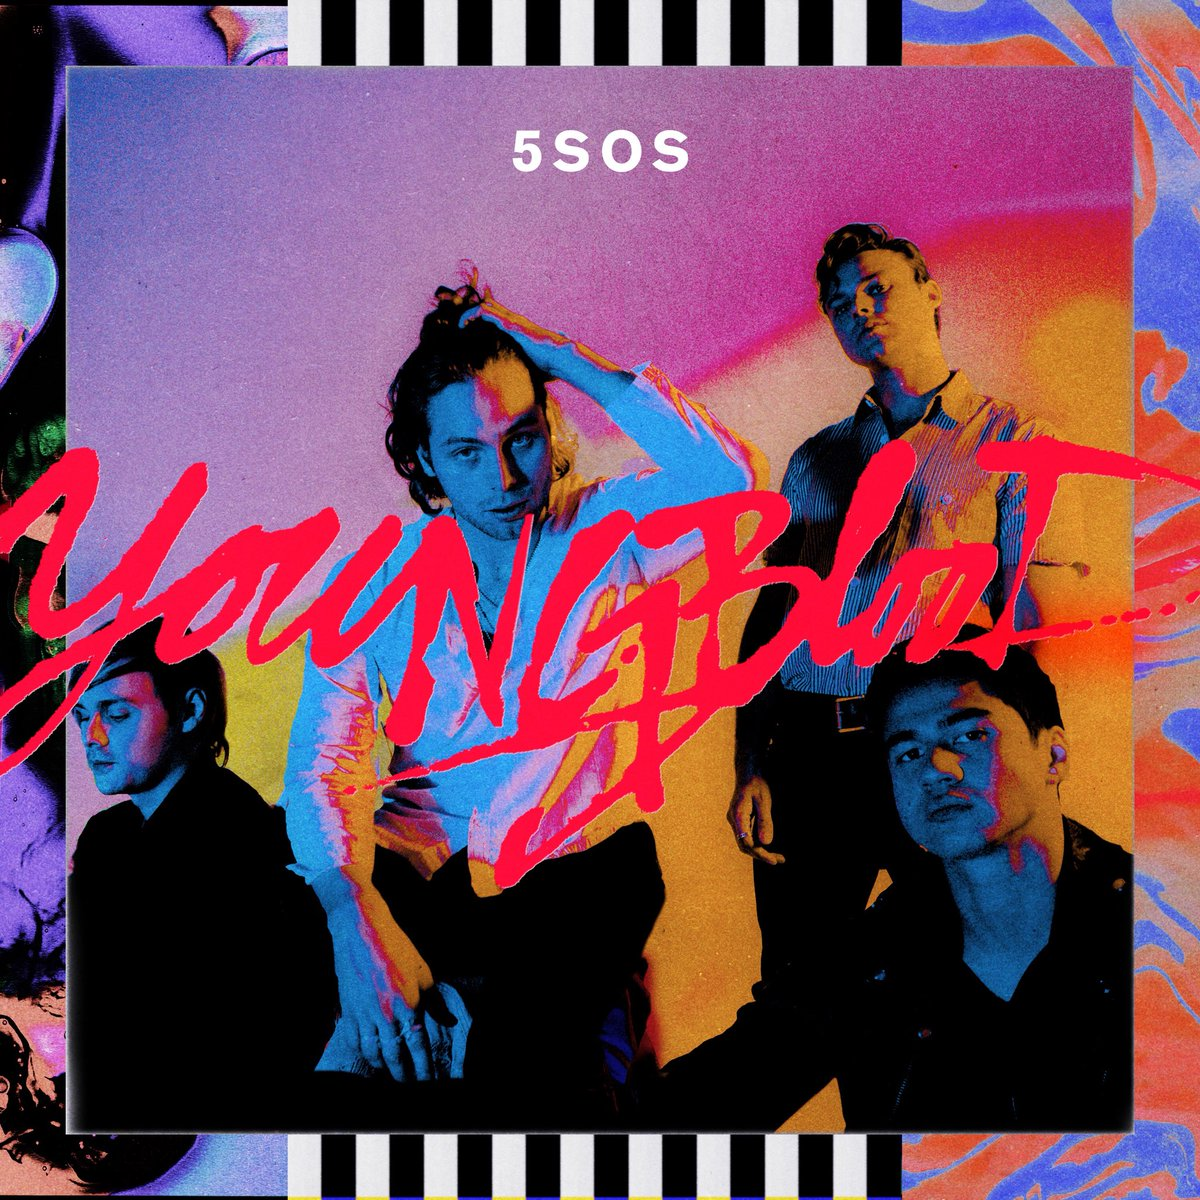 Our third album 'YOUNGBLOOD'. June 22nd. Pre order from this Thursday.